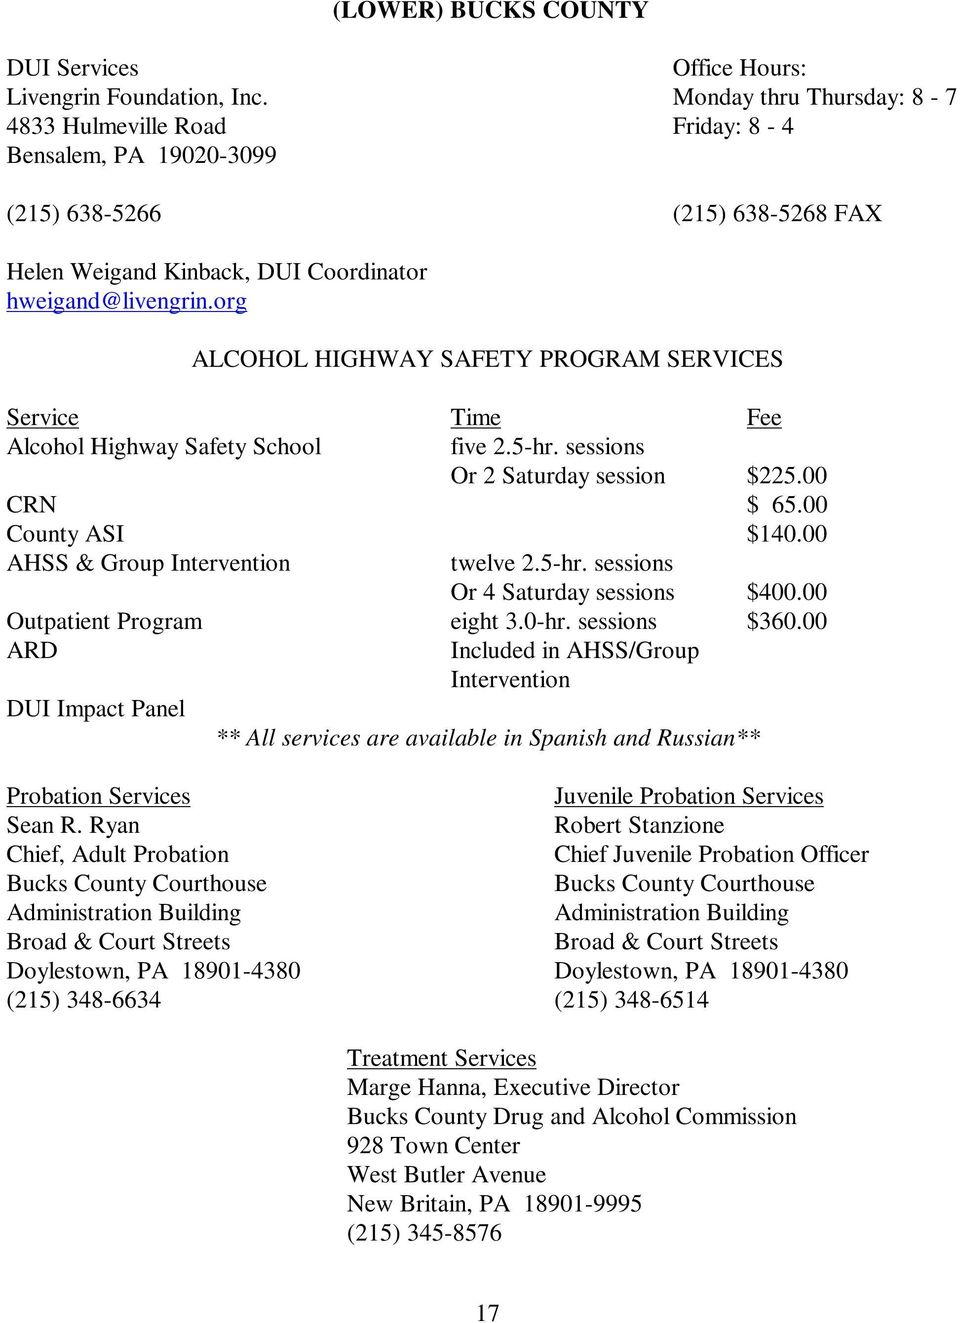 org Alcohol Highway Safety School five 2.5-hr. sessions Or 2 Saturday session $225.00 CRN $ 65.00 County ASI $140.00 AHSS & Group Intervention twelve 2.5-hr. sessions Or 4 Saturday sessions $400.